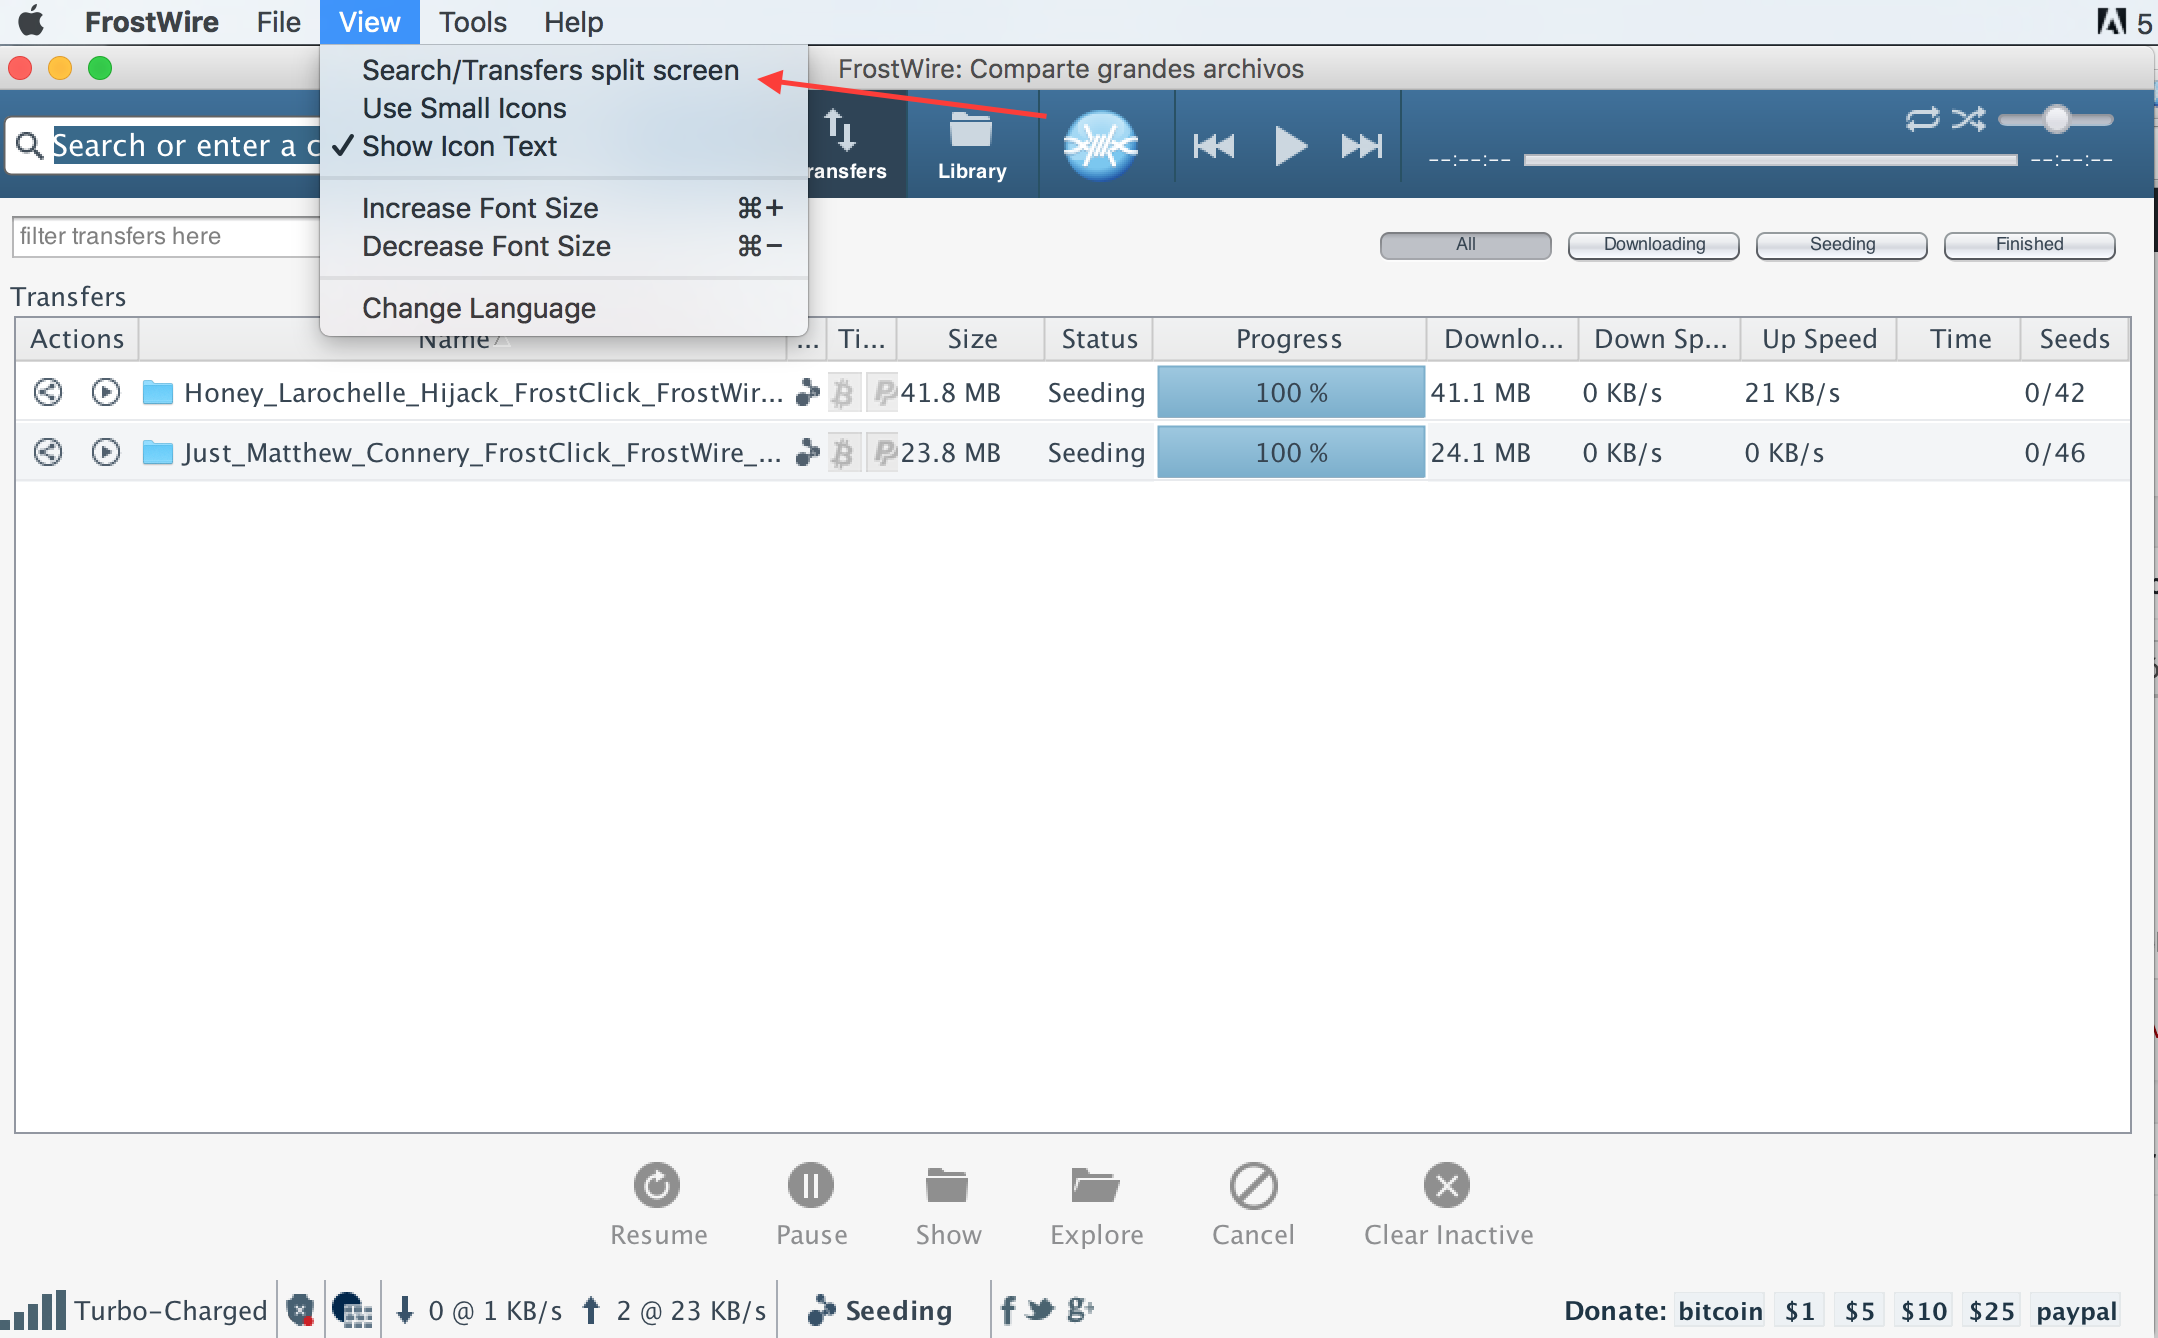 FROSTWIRE 5.3.6 FOR CHROMEBOOK EBOOK DOWNLOAD